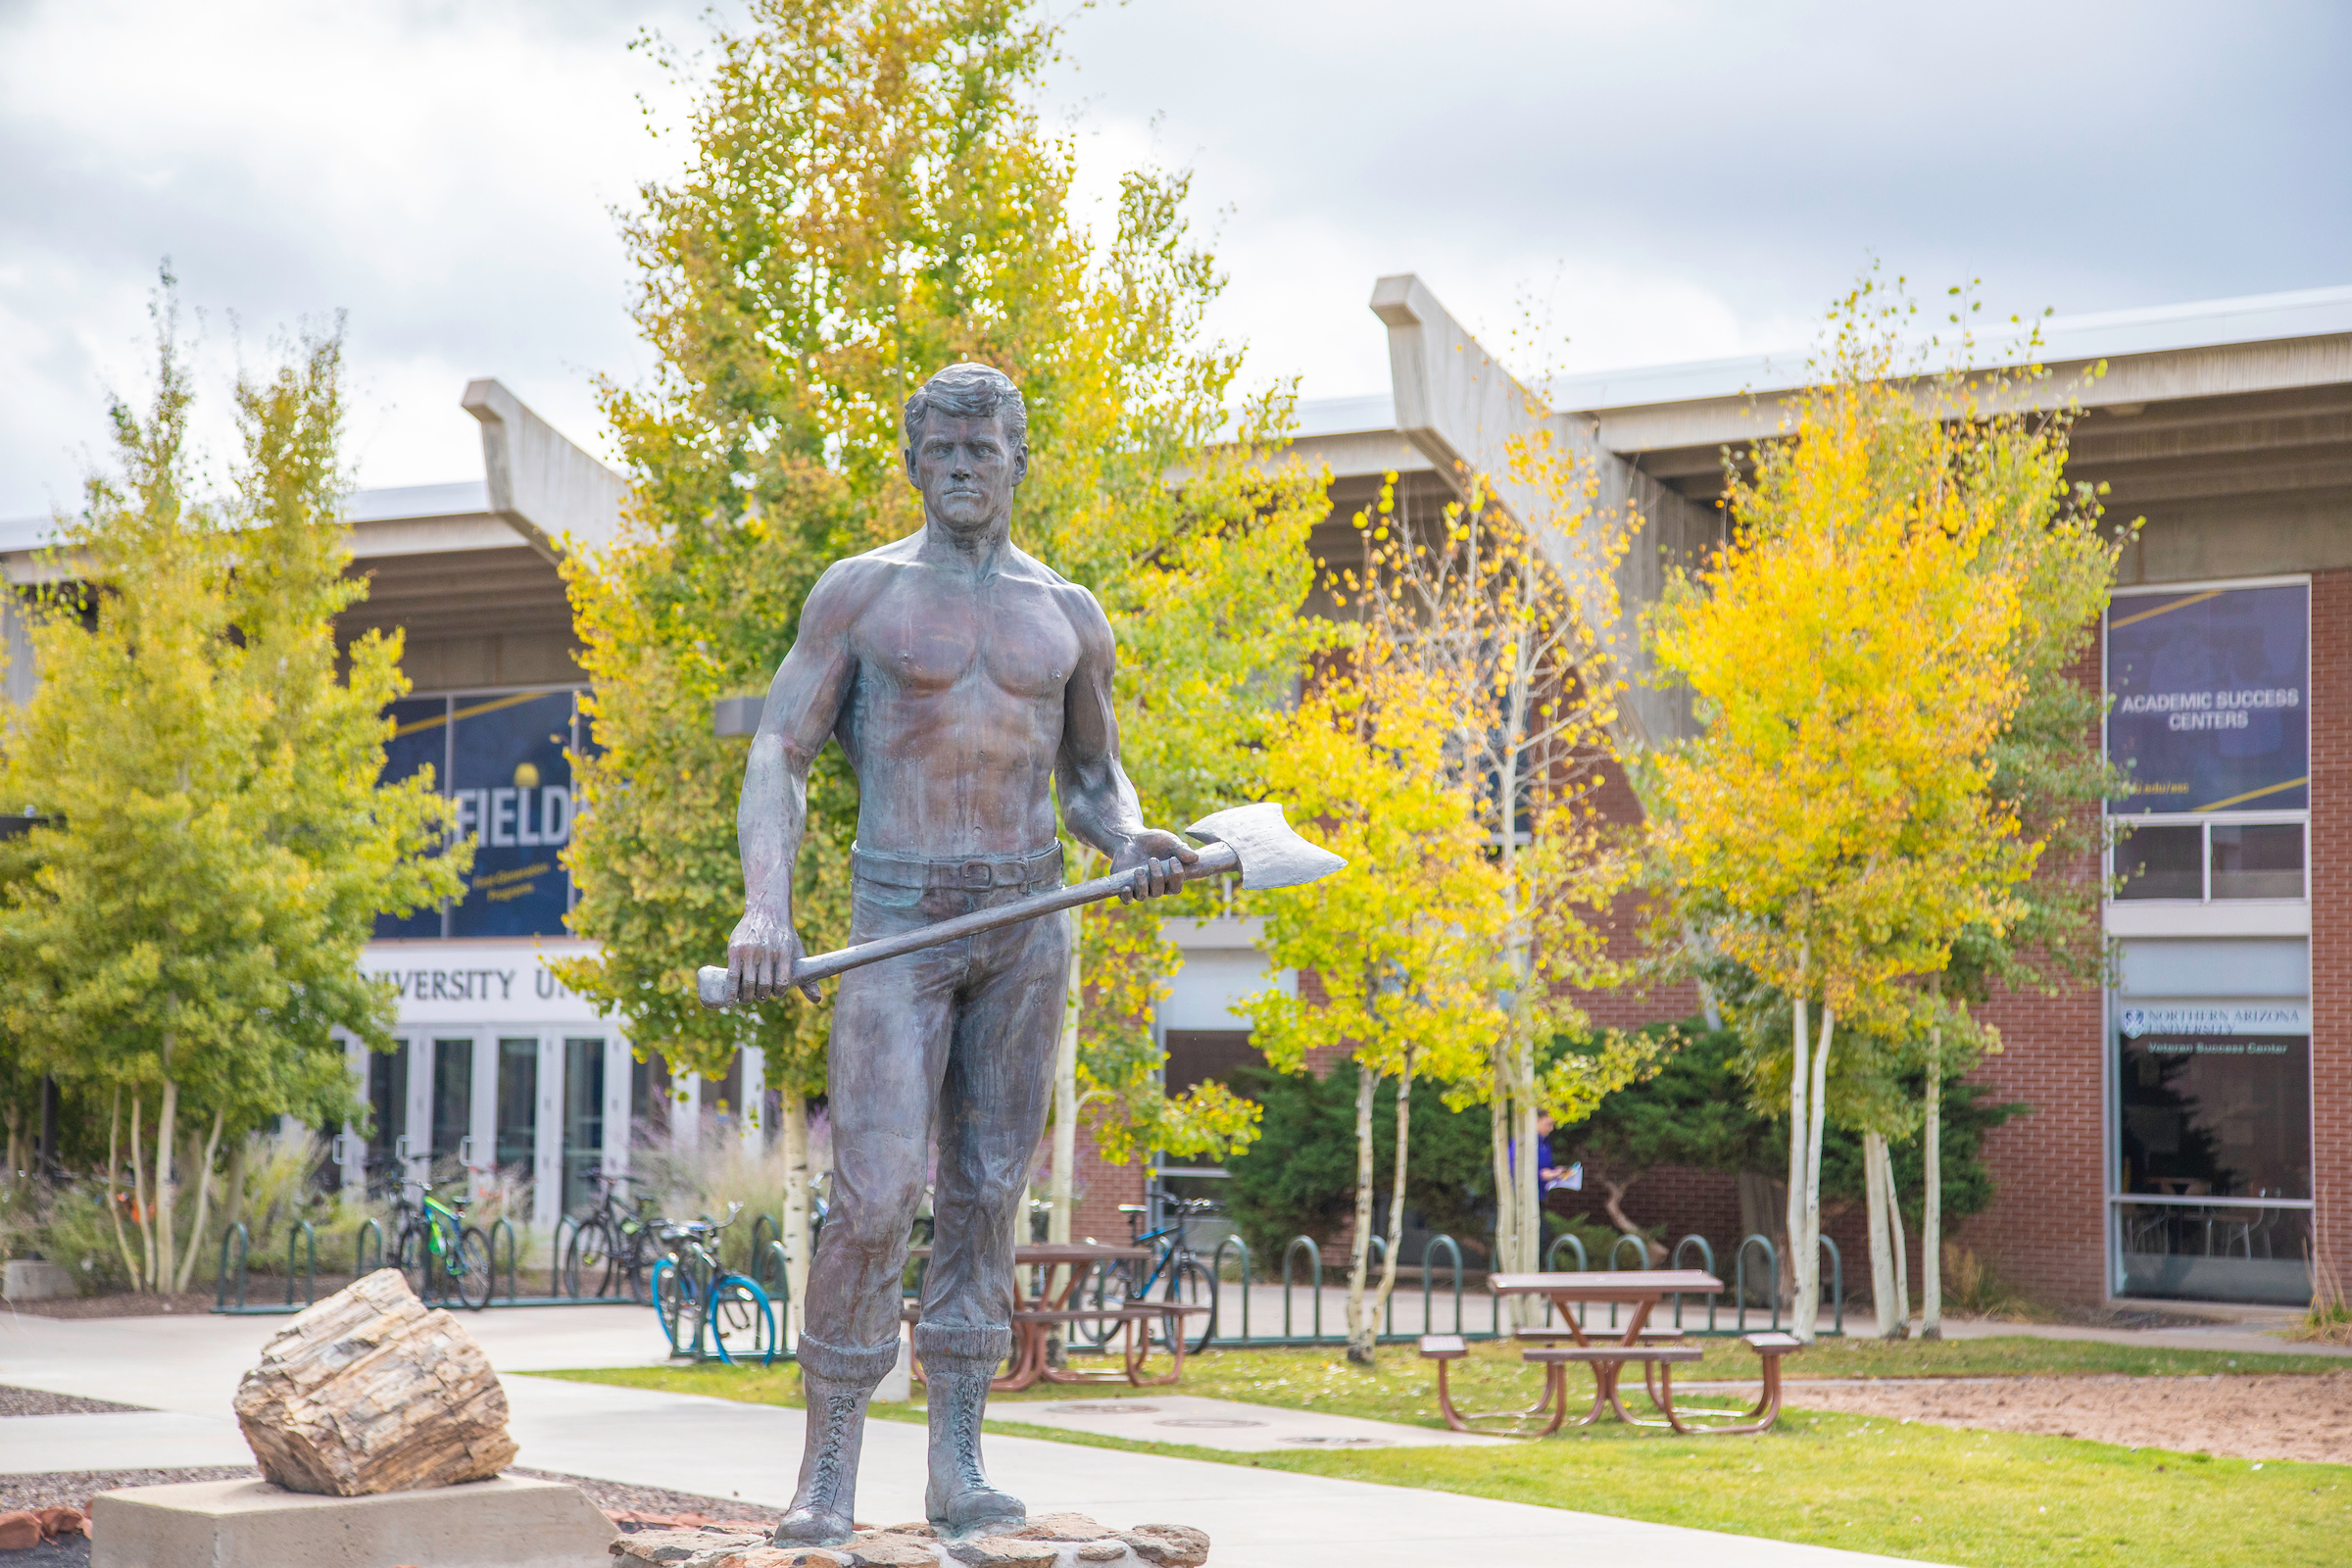 a statue of a lumberjack on the Flagstaff campus